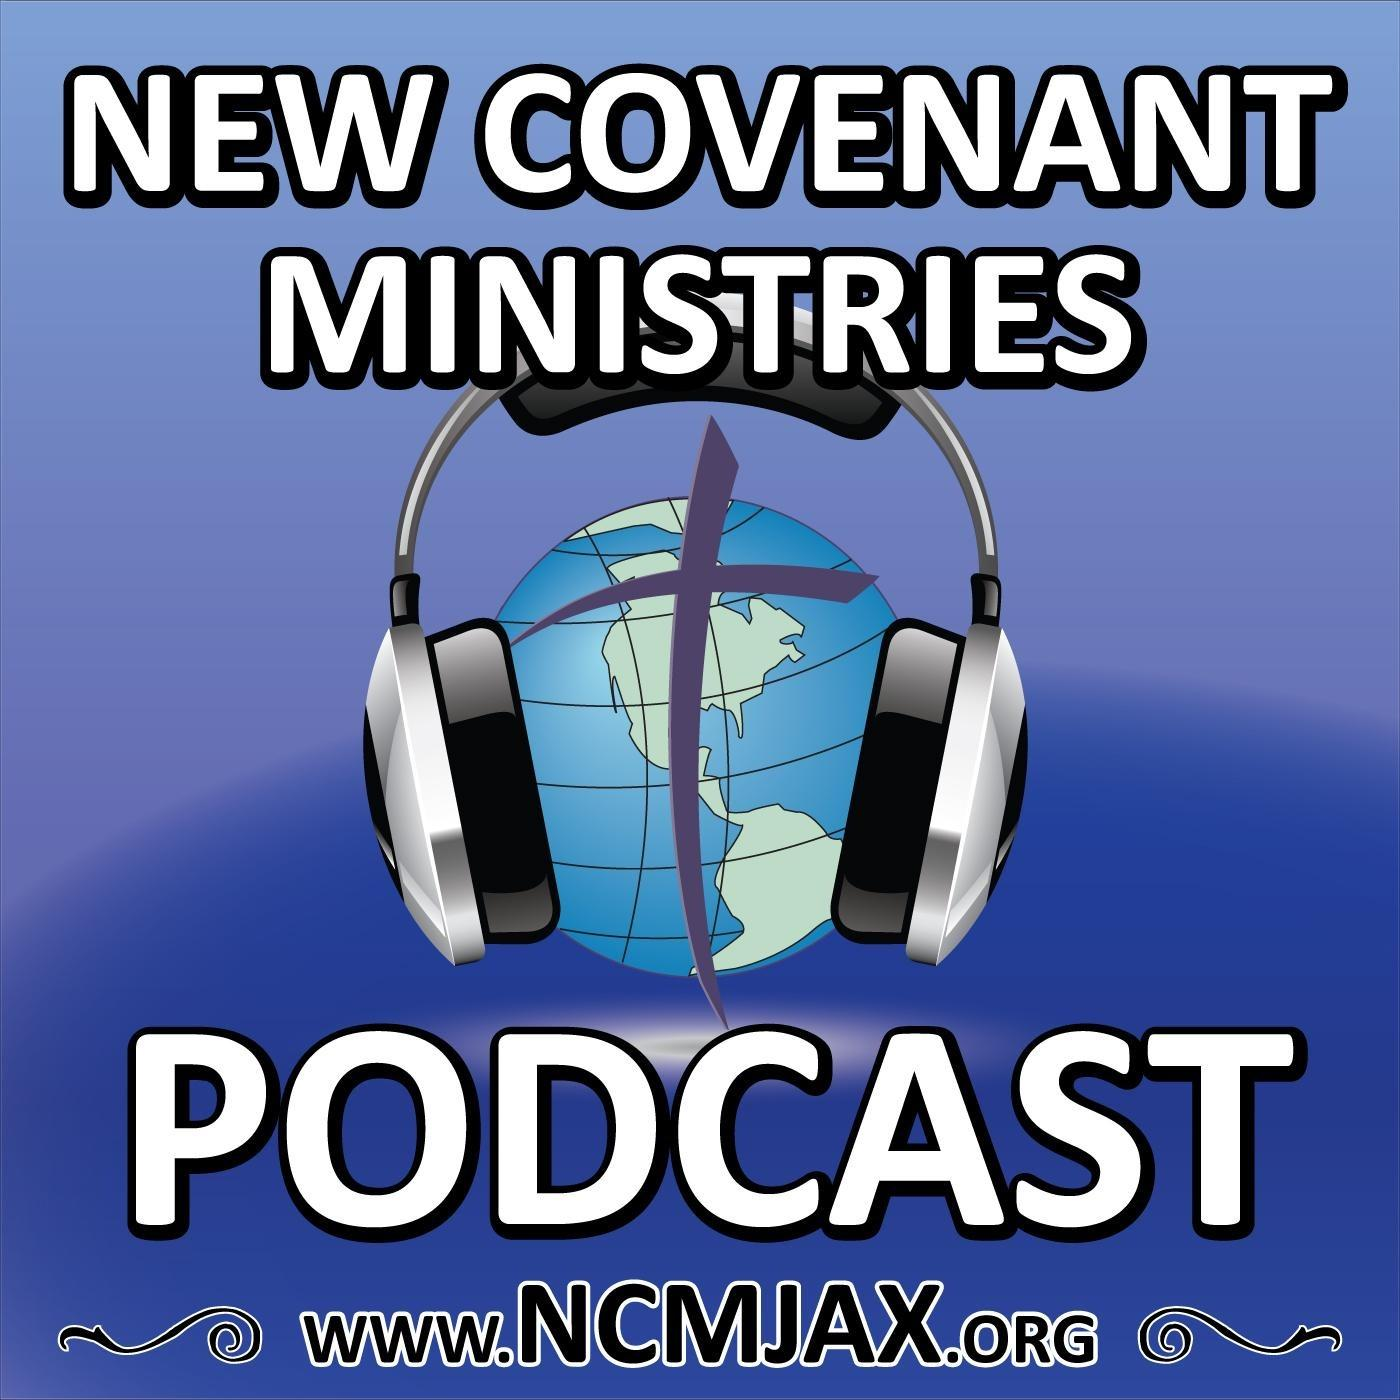 New Covenant Ministries Podcast